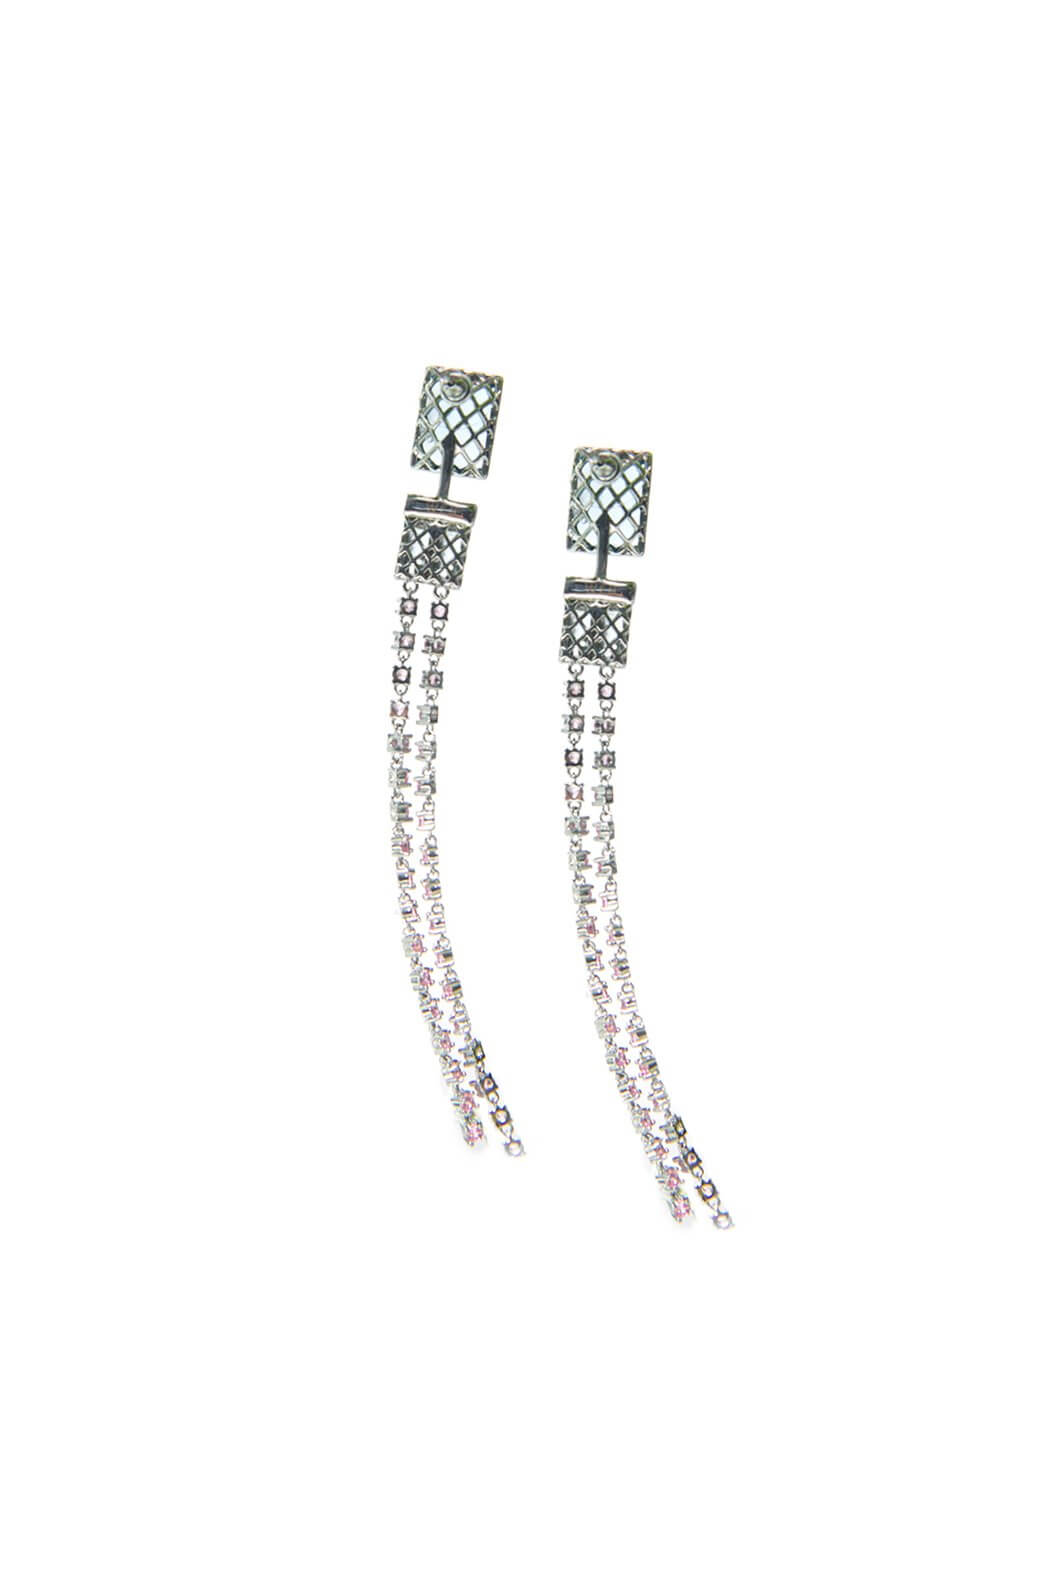 Nasha Earrings - HAN WEN STUDIO